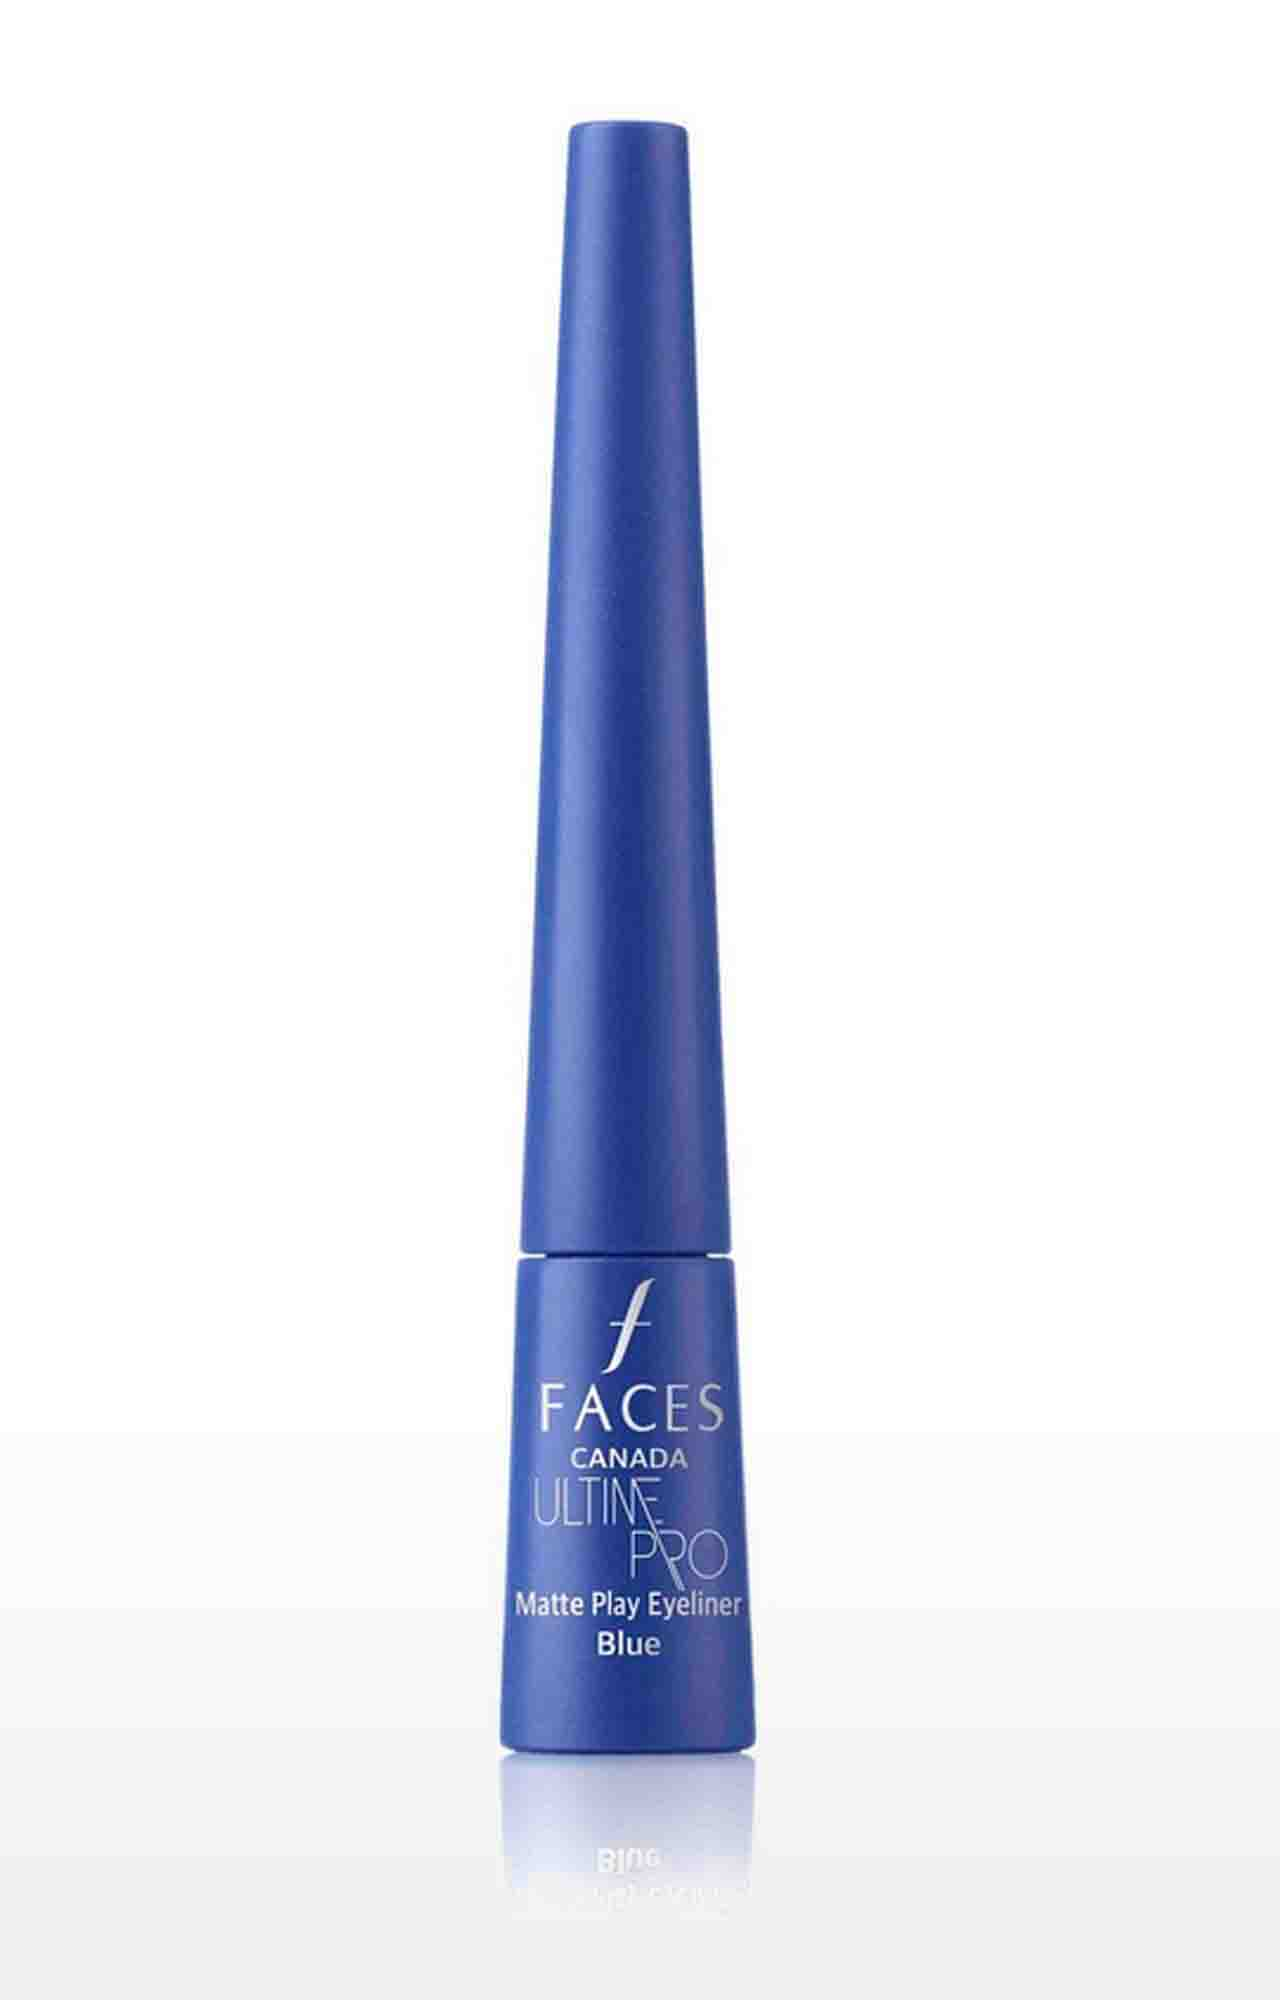 Faces Canada | Ultime Pro Matte Play Eyeliner - Sapphire